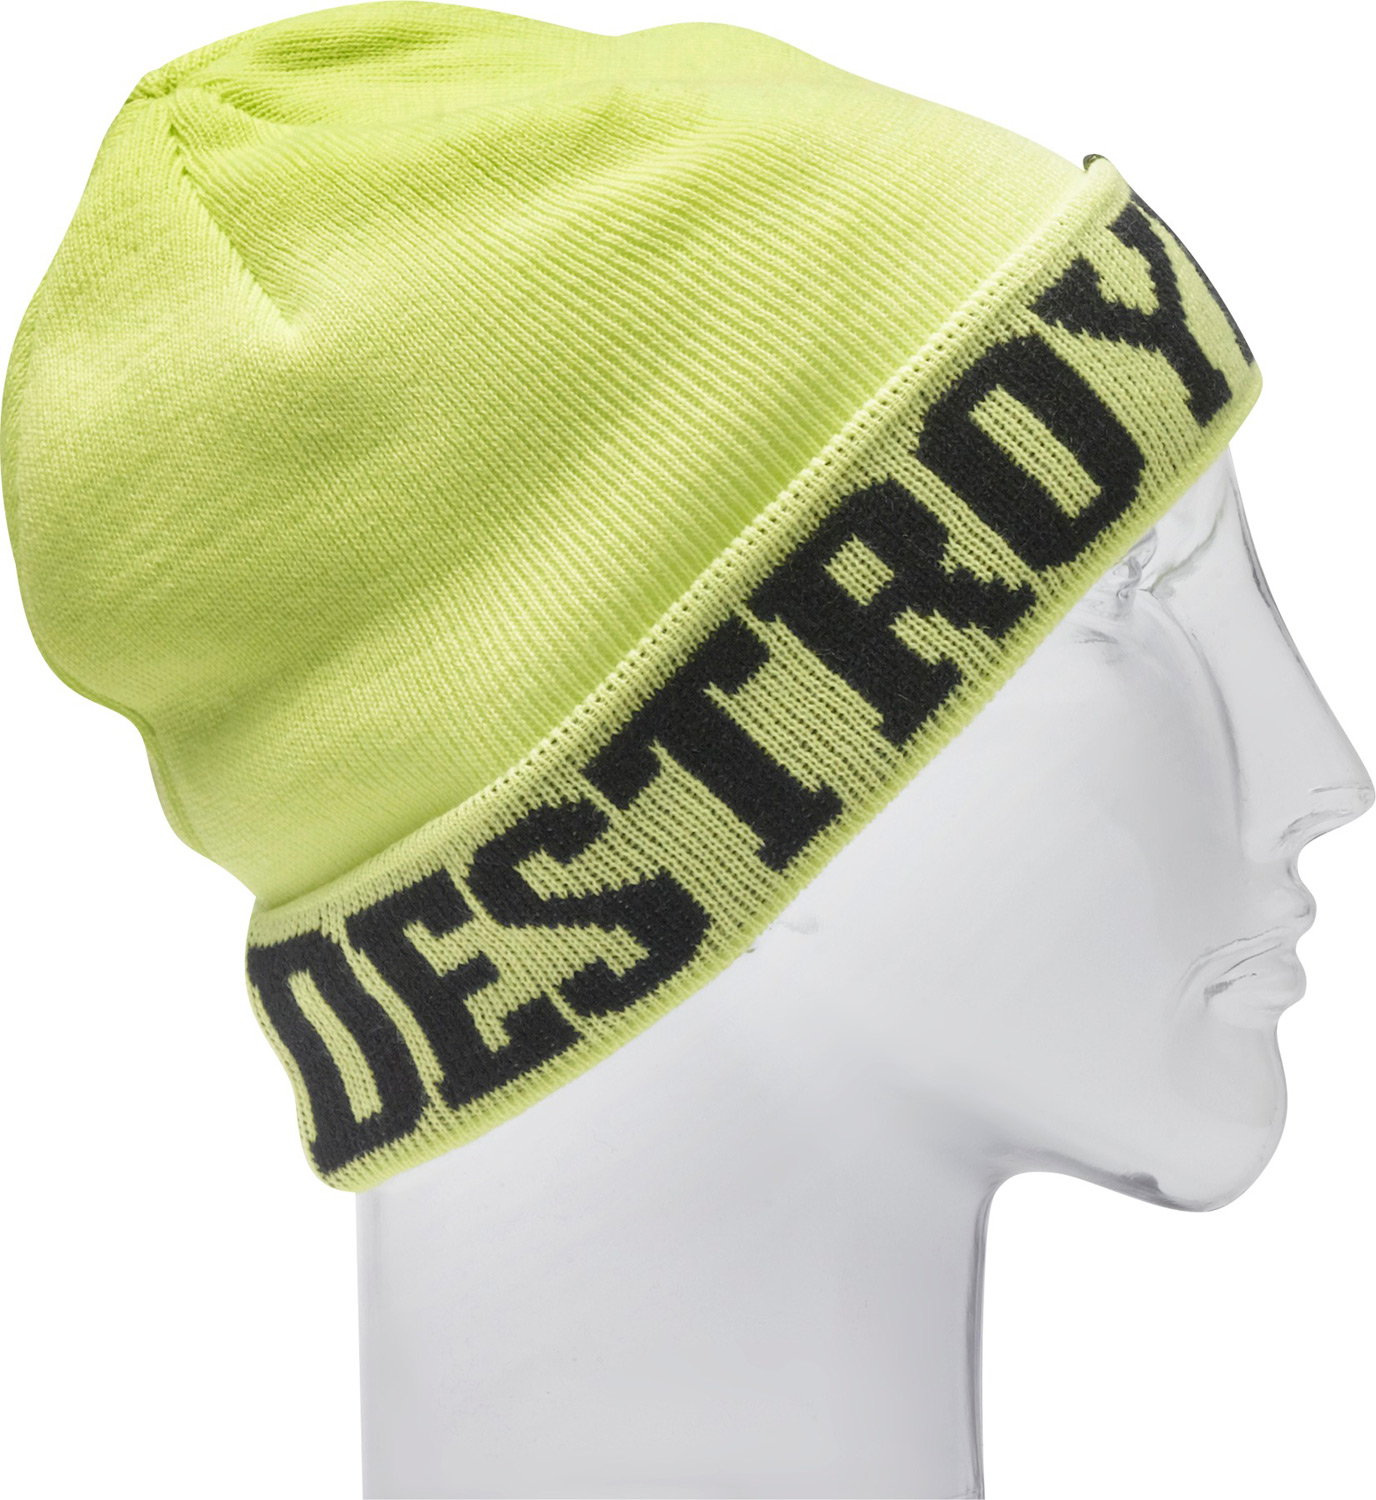 "Put this on your head and get ready to destroy all obstacles.  Machine knit   100% acrylic   7 1/2"" tall   Fine gauge jacquard beanie   One size fits all - $13.95"